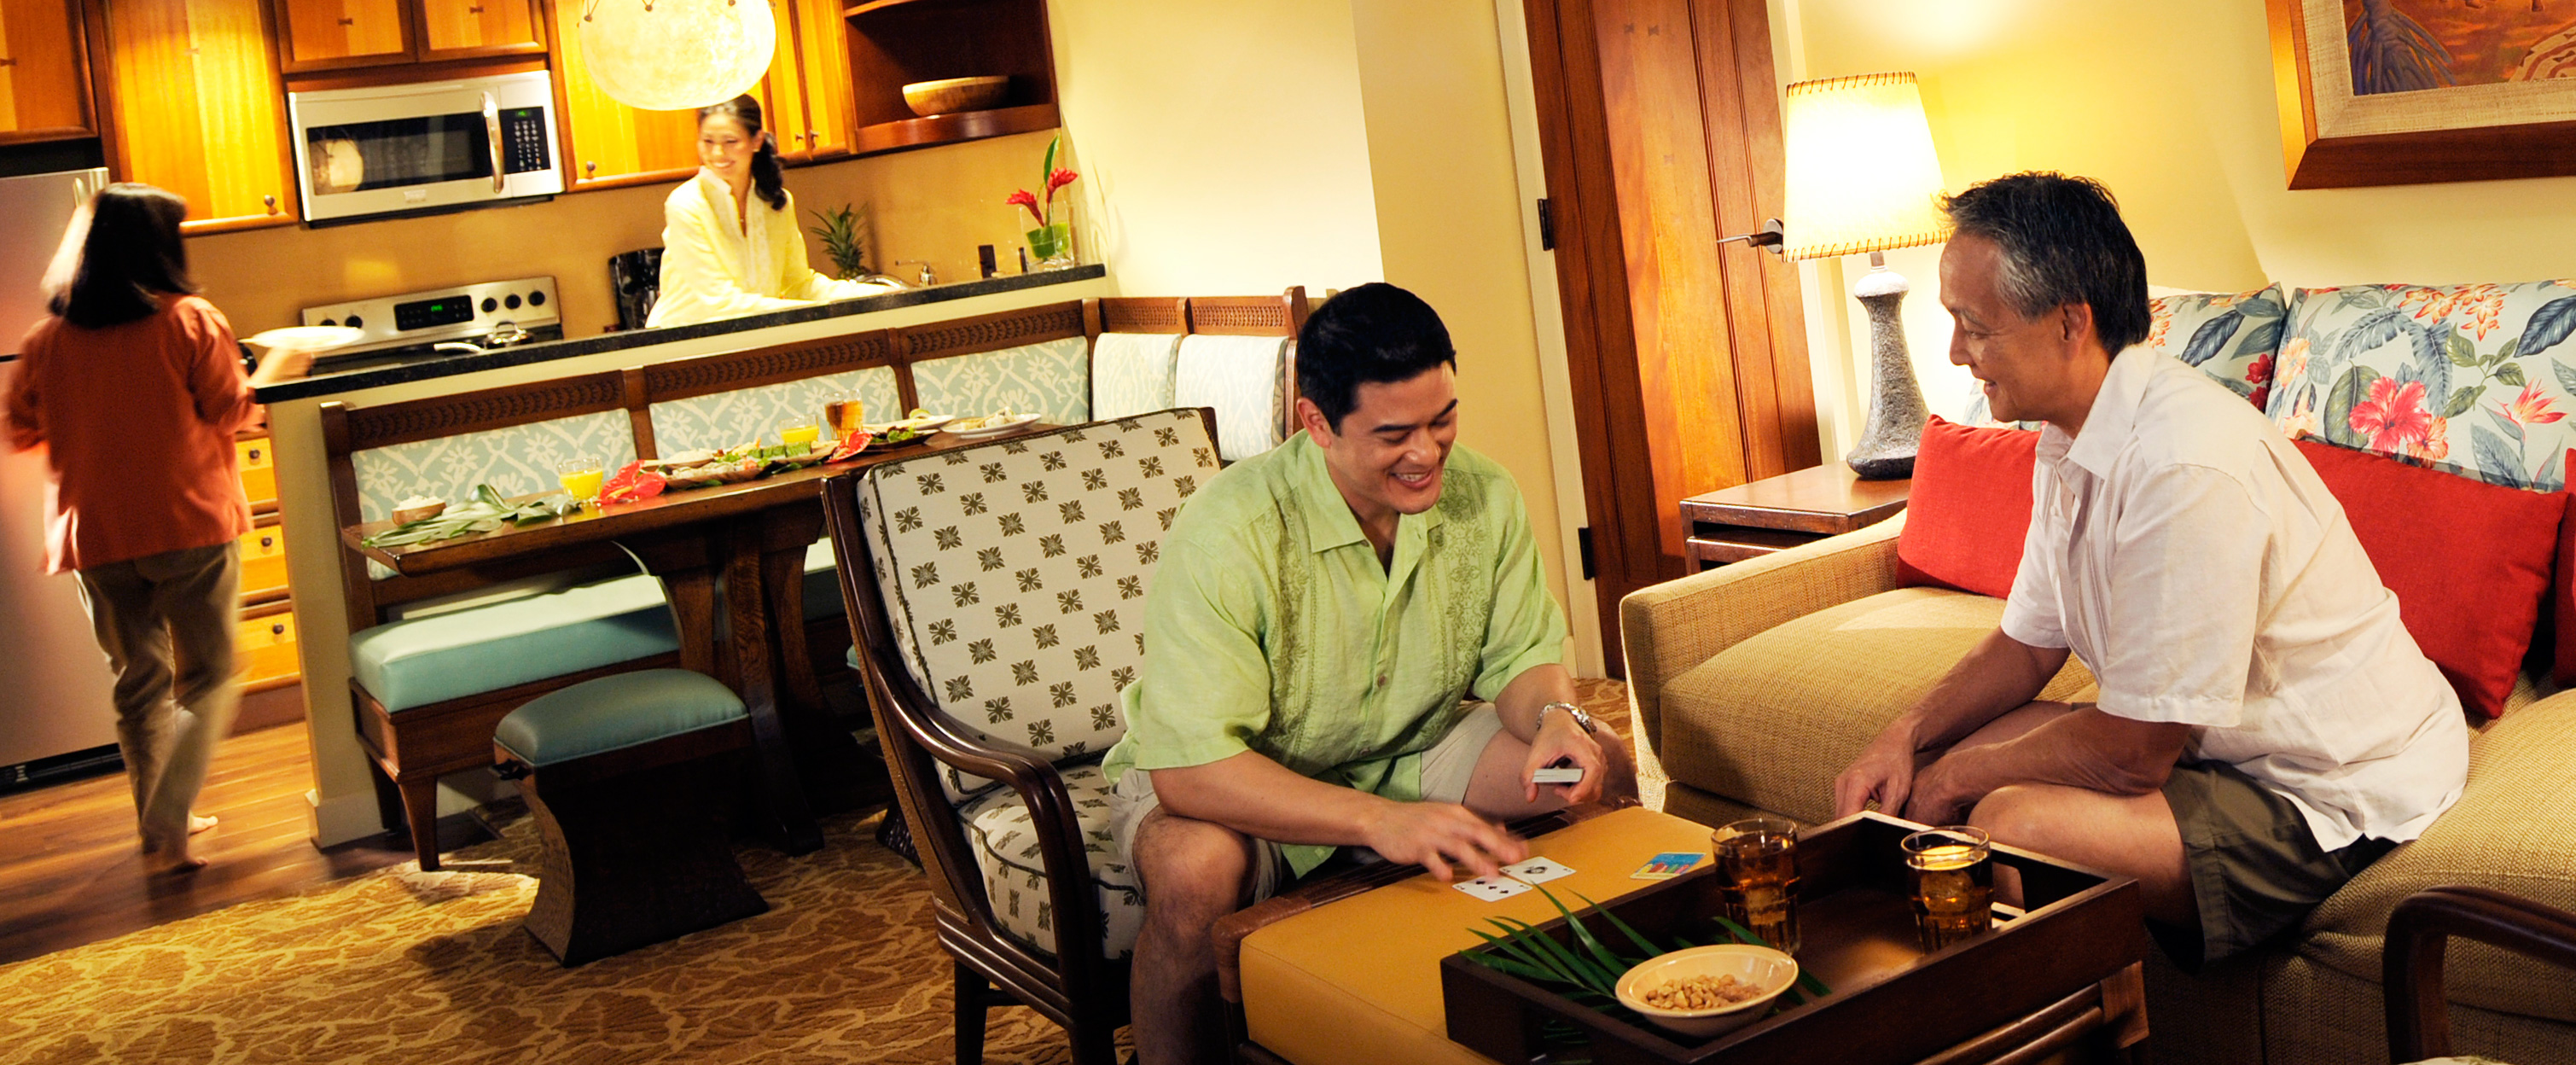 A family in the living area and kitchen of a 2-bedroom villa at Aulani